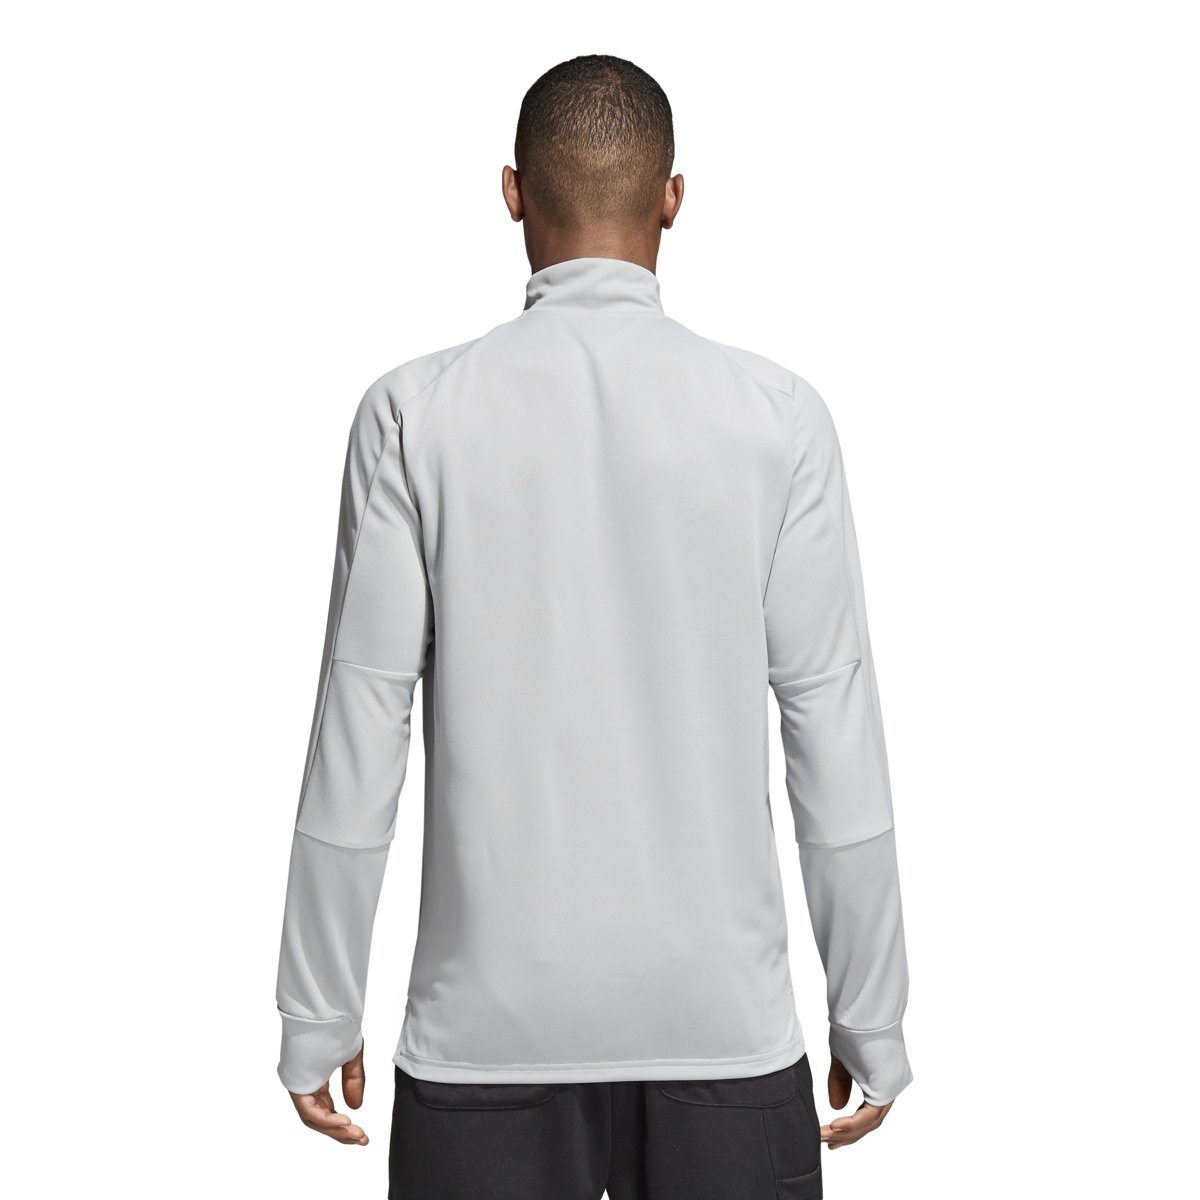 adidas Condivo 18 Training Top 2 | CV8234 Soccer Apparel adidas Adult Small Stone White